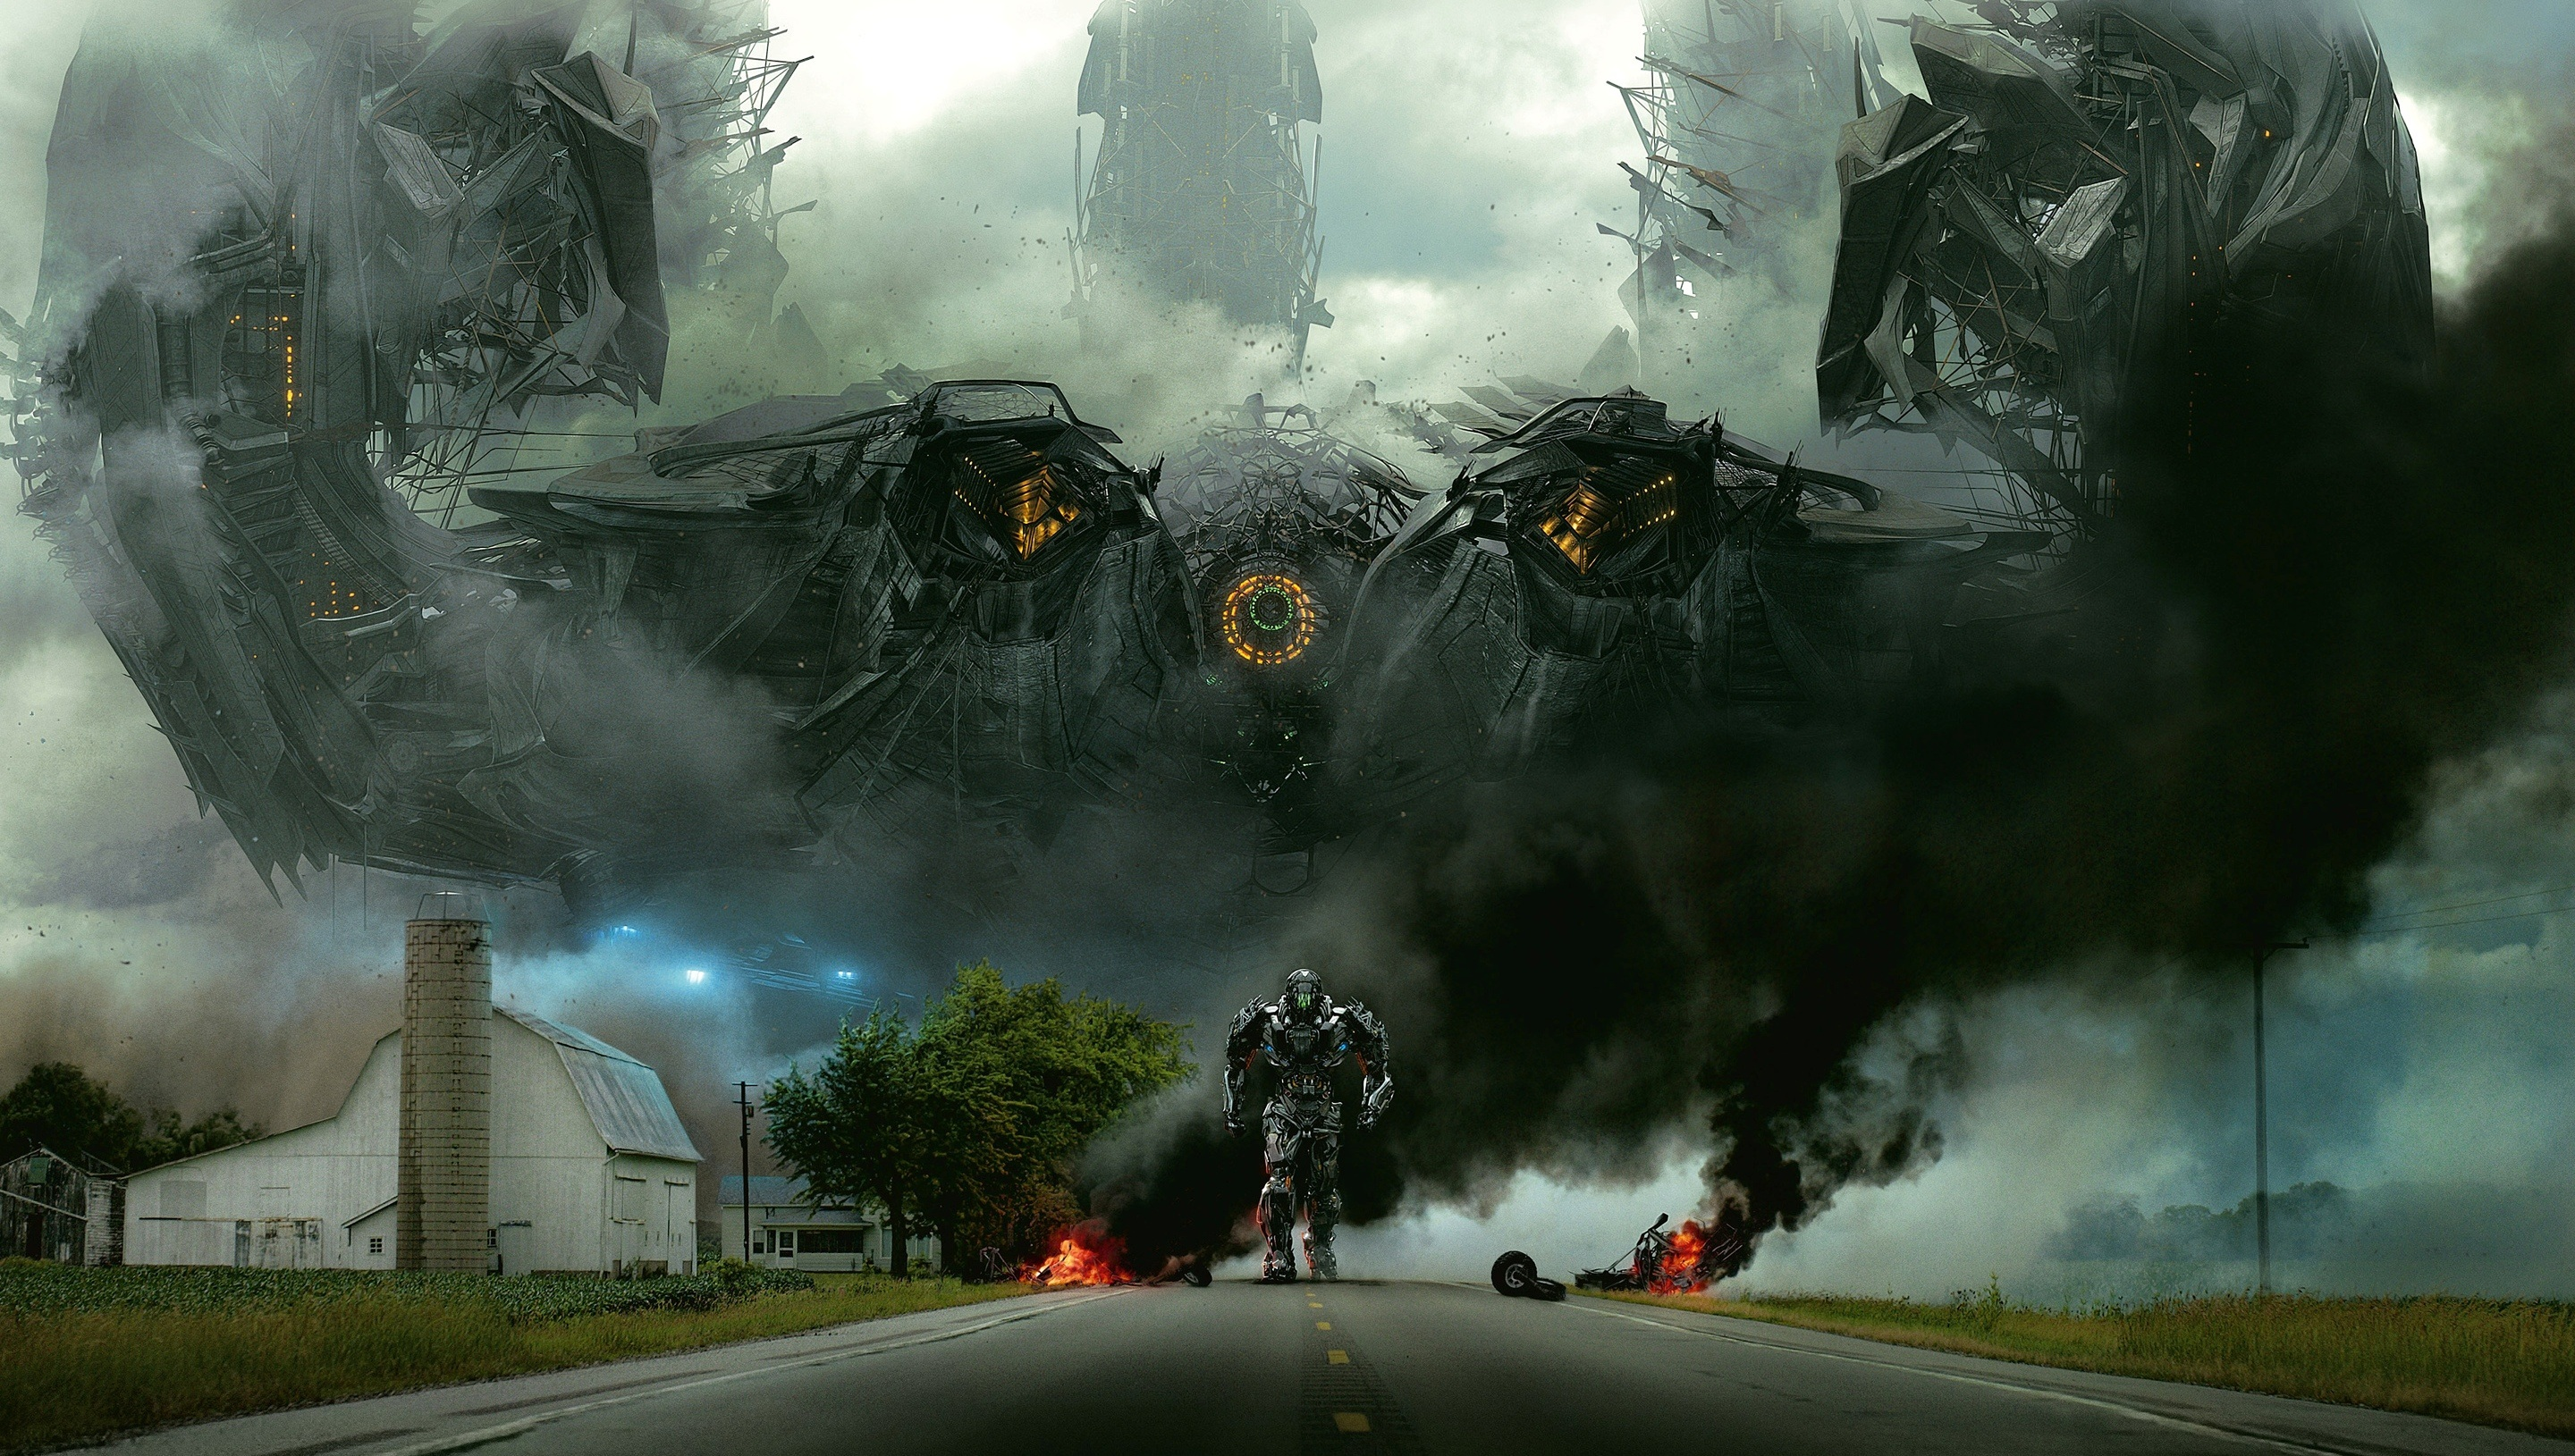 transformers 4 featured